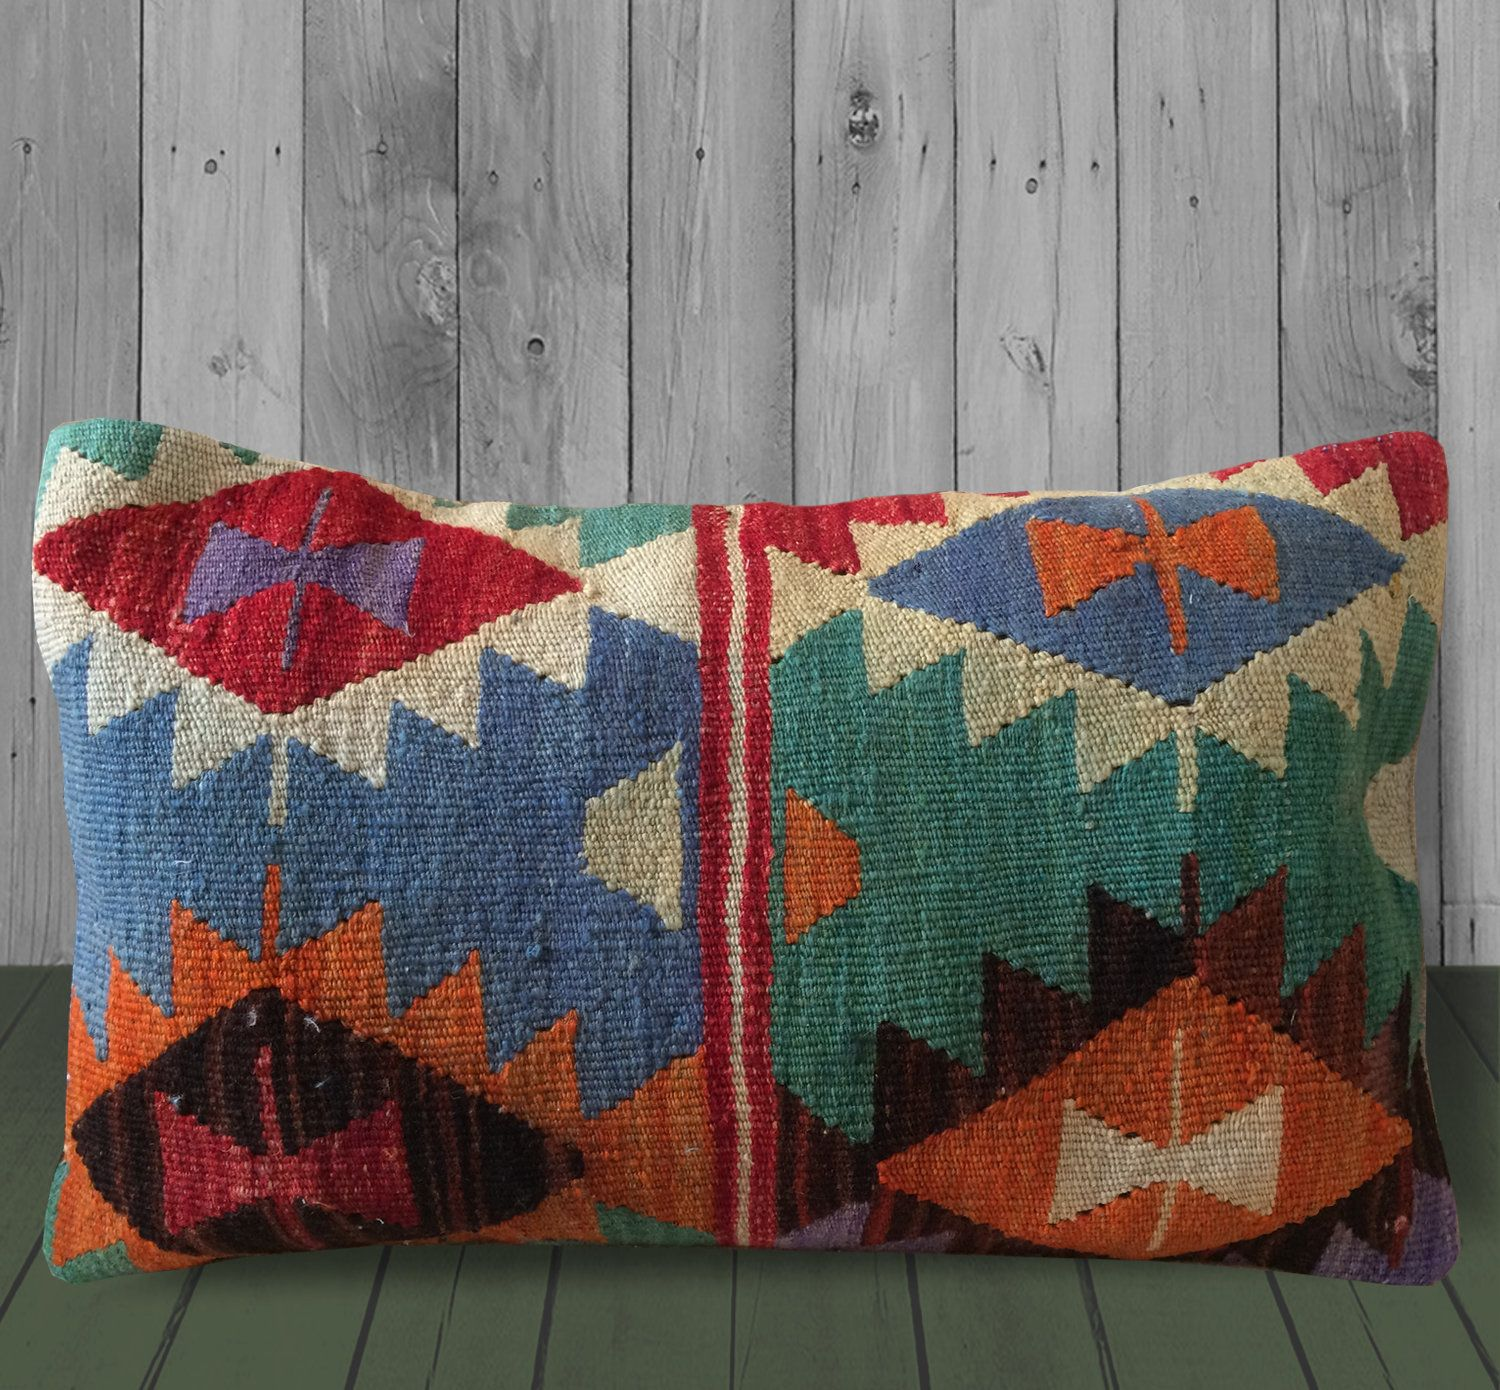 Green Orange Blue Southwestern Throw Pillows 12x20 Kilim Pillow